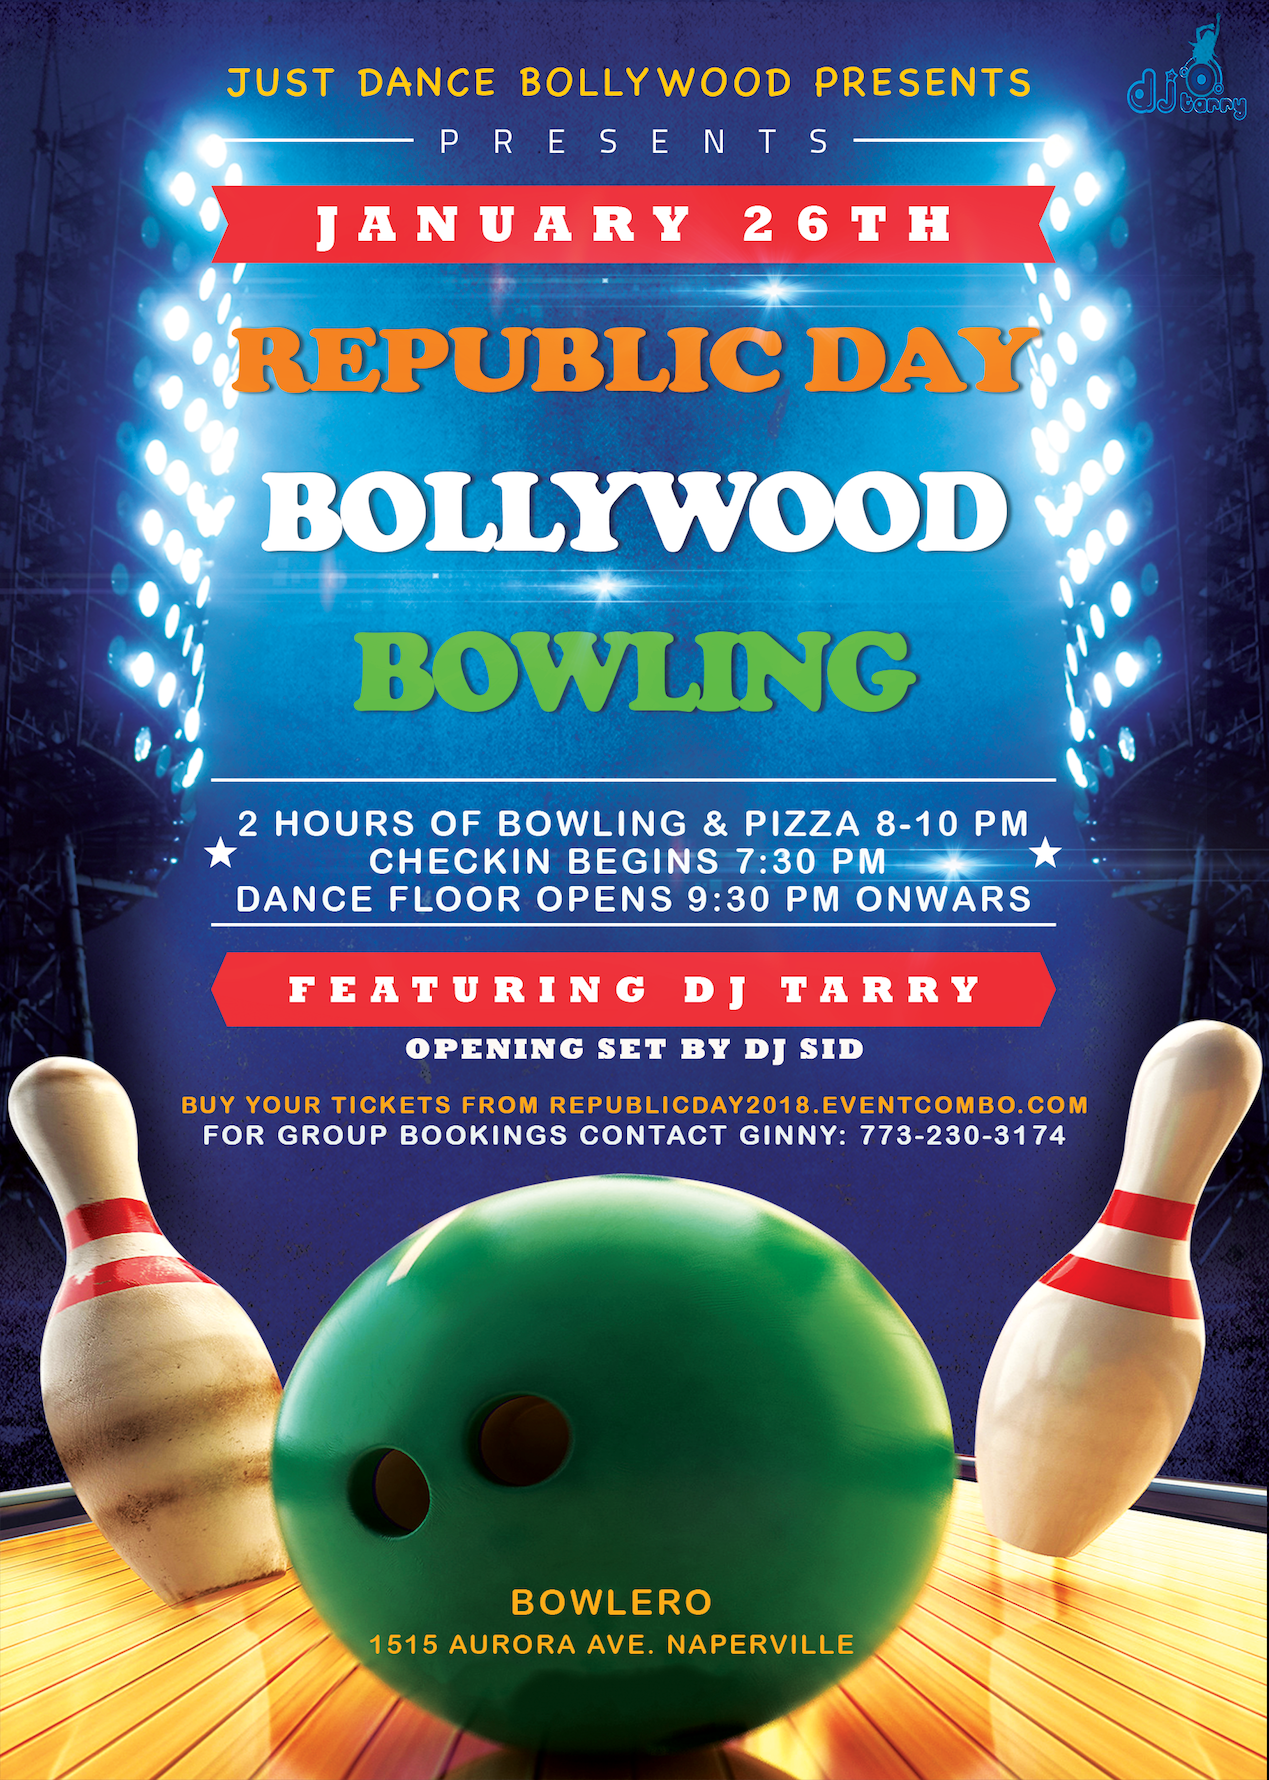 Republic Day Bollywood Bowling